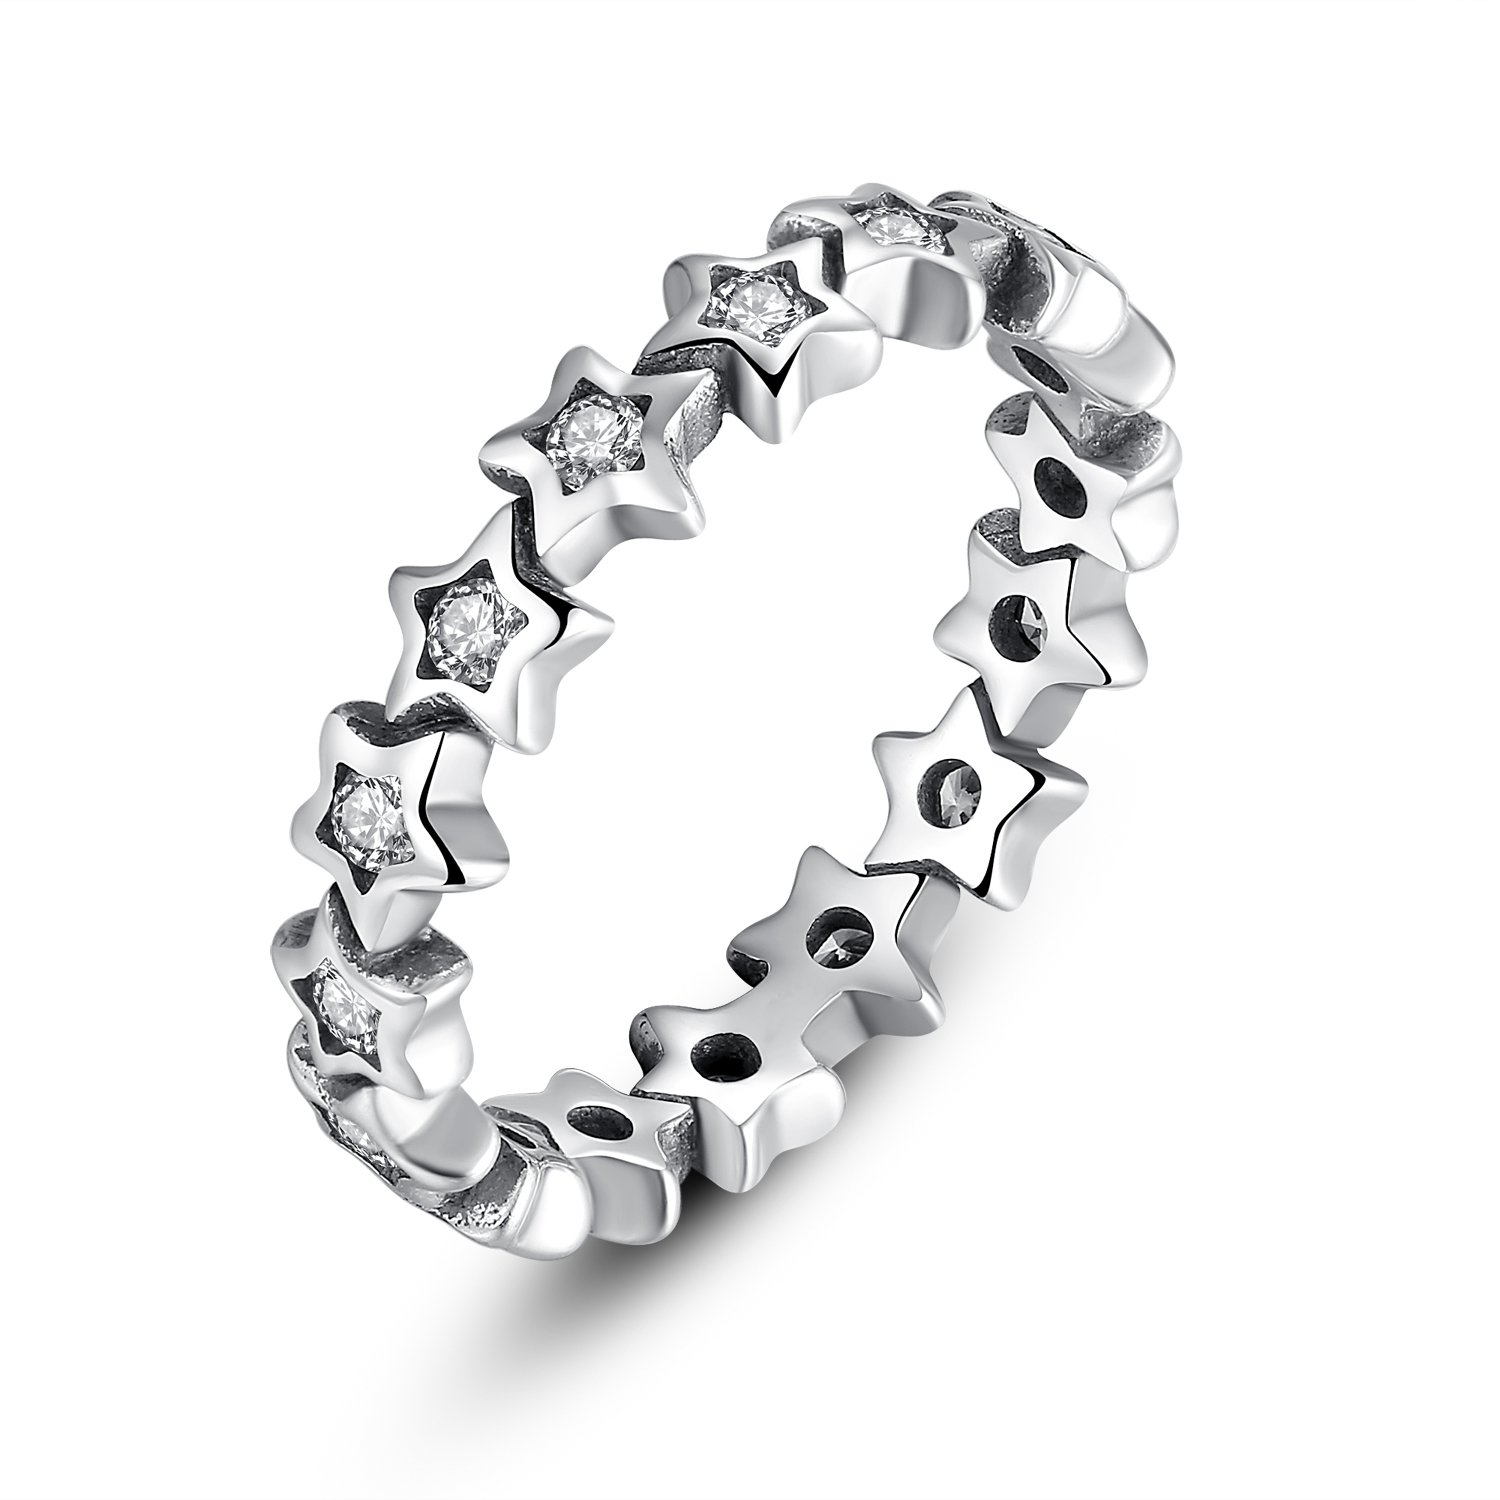 Star Trail Stackable Finger Ring For Women Wedding 100% 925 Sterling Silver Jewelry (7)